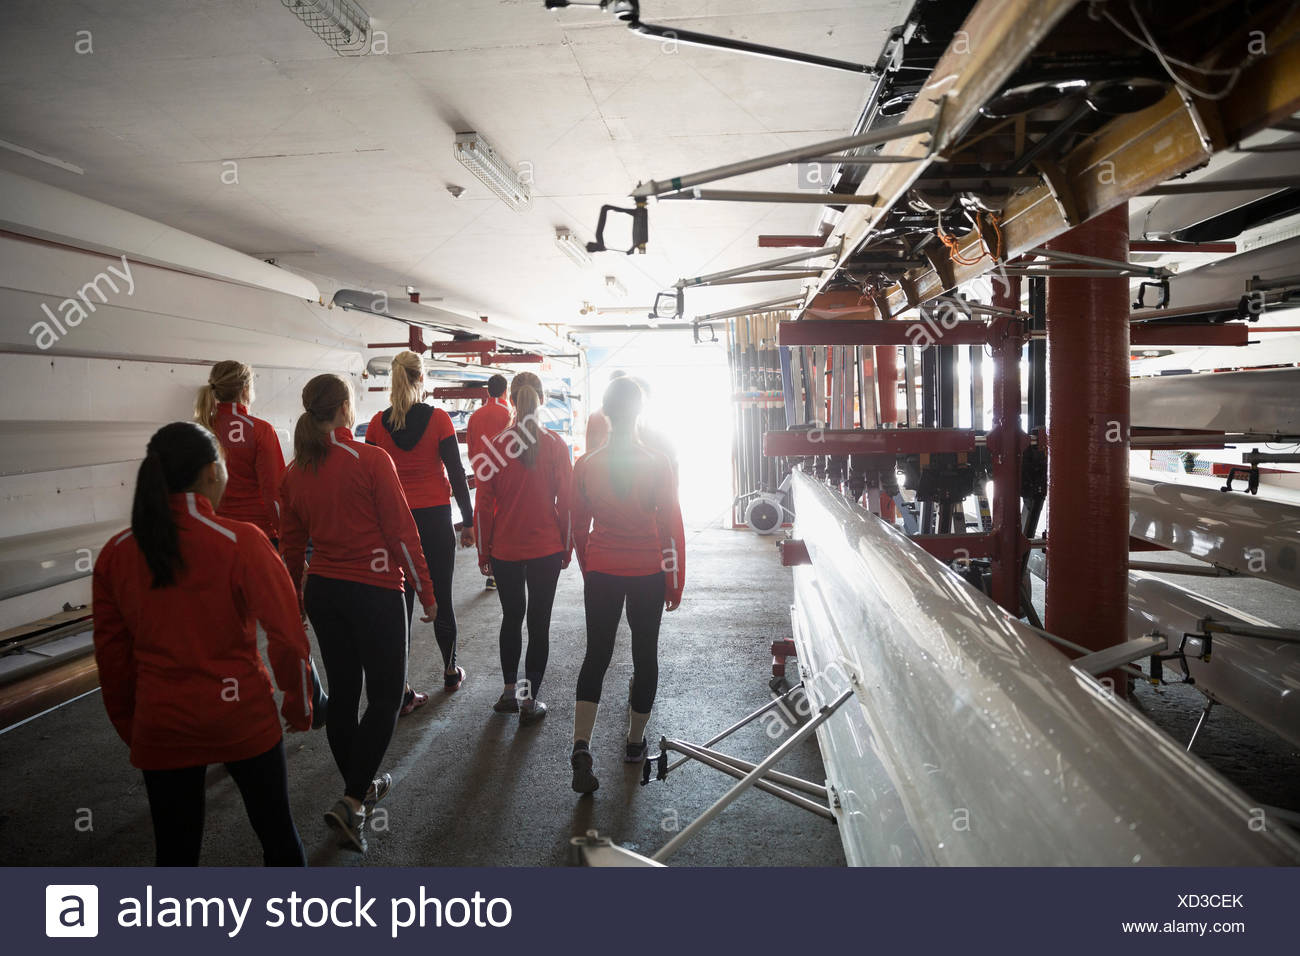 Rowing team in boathouse - Stock Image